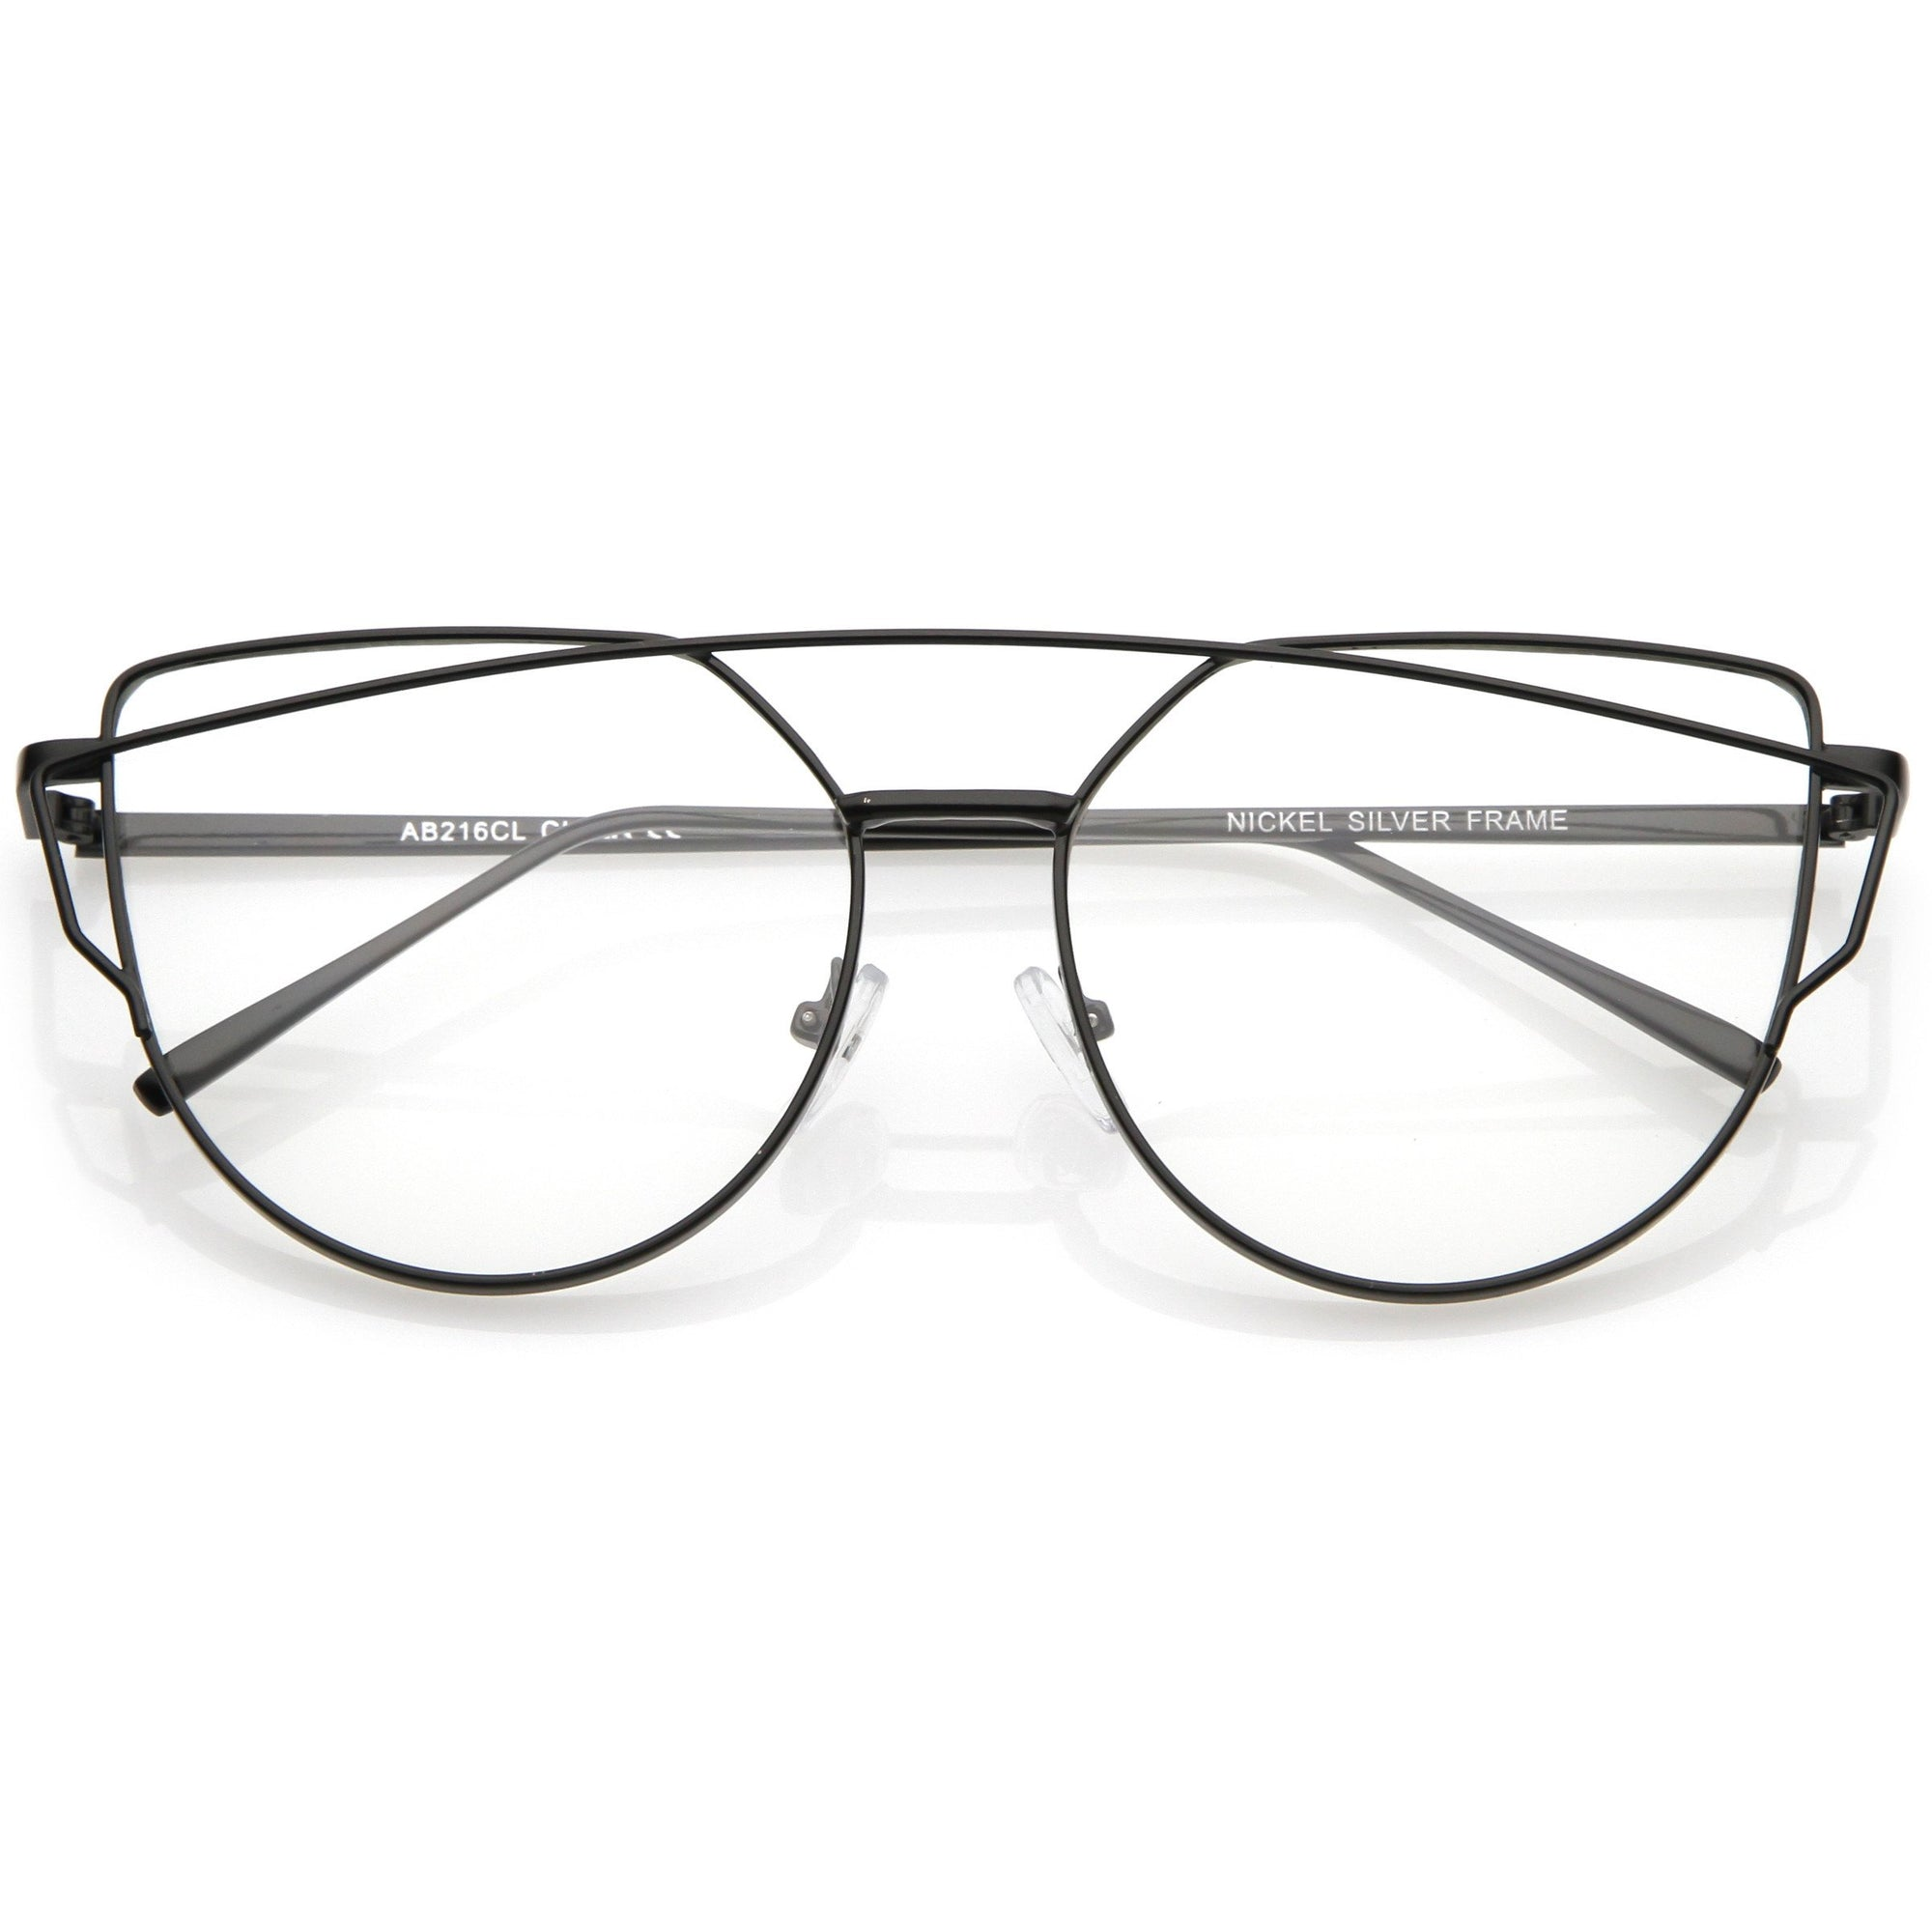 f9a42252c65 Retro Modern Intricately Designed Clear Lens Glasses C295